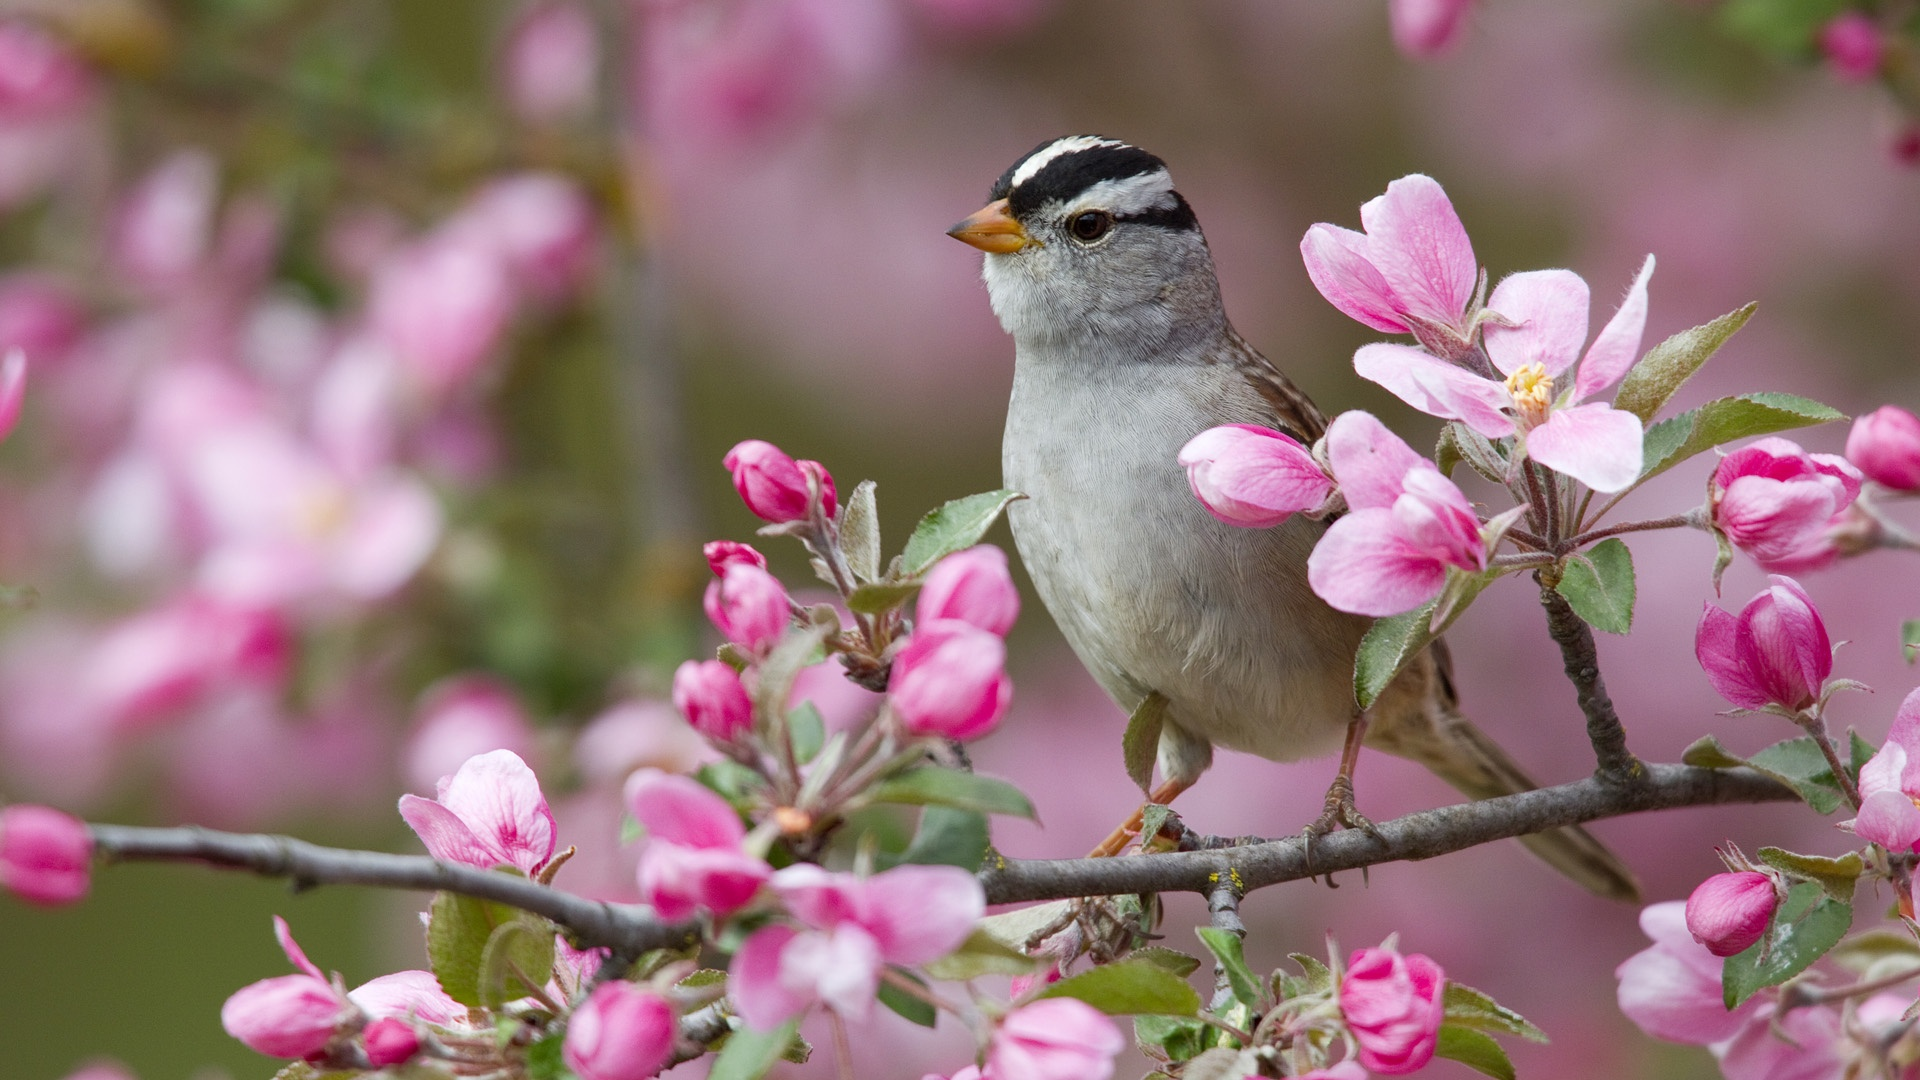 Gallery for   bird and flowers wallpaper 1920x1080